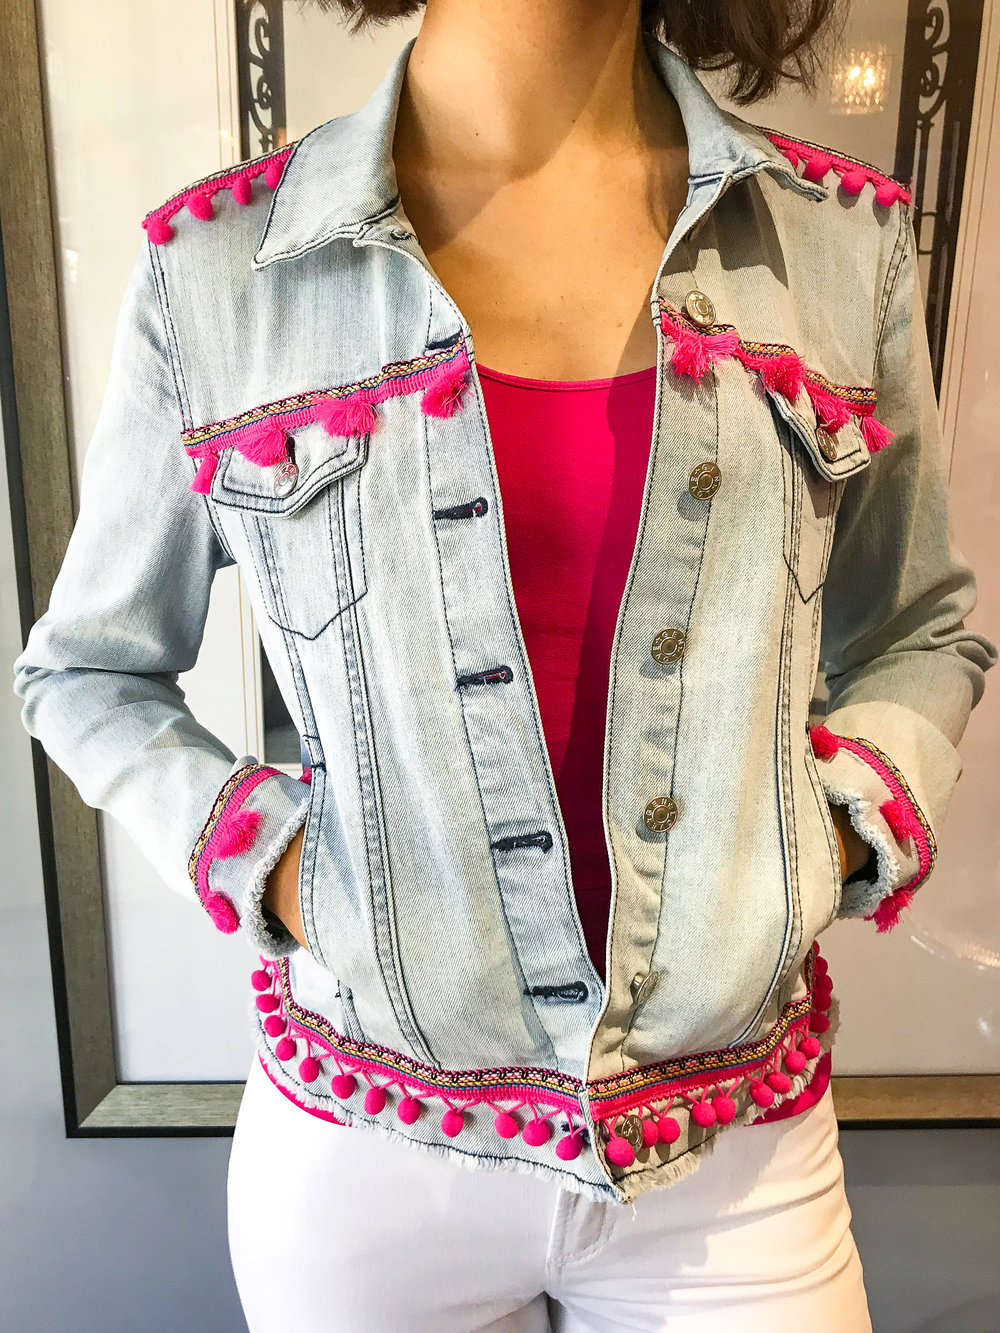 CAMBIO denim pants and Generation Love jacket for Folk Fest.jpg